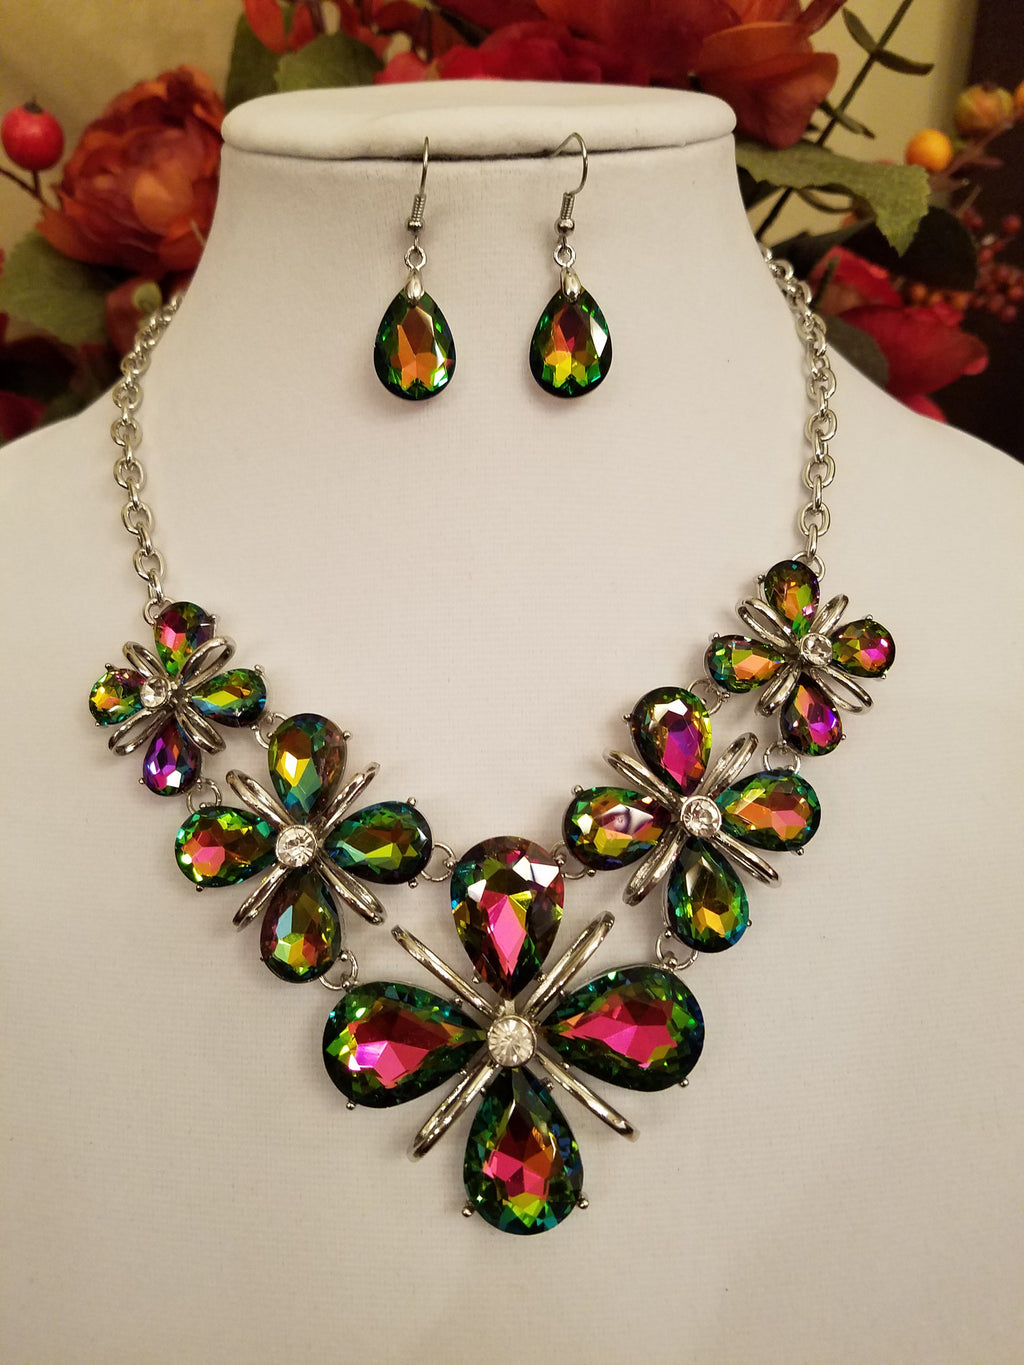 Green Vitrail Floral Crystal Statement Necklace Set - Bedazzled By Jeanelle